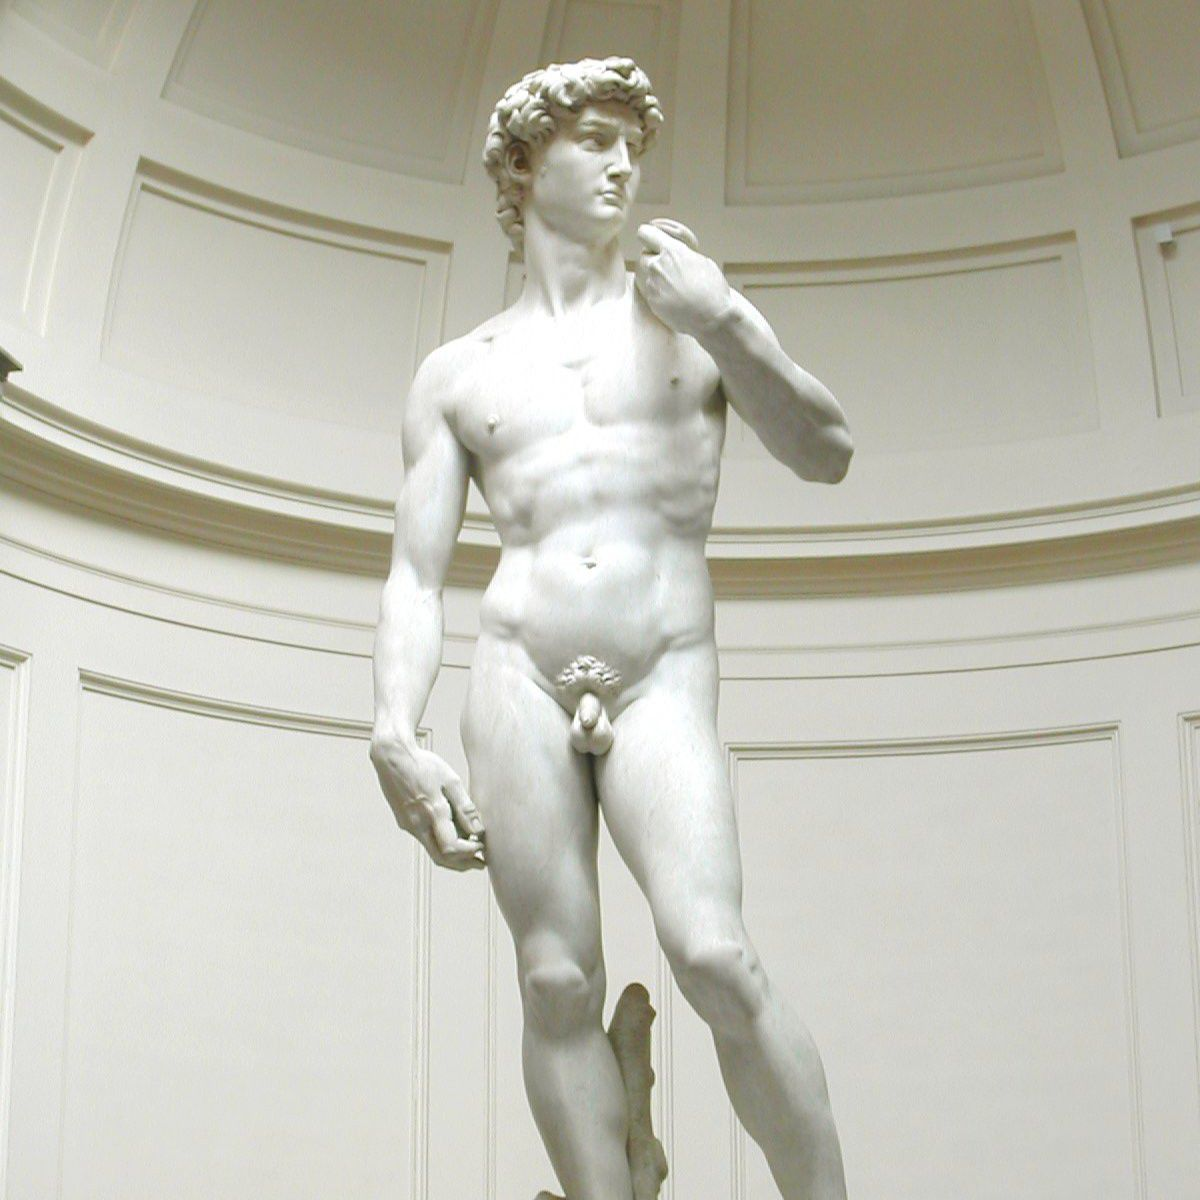 The Michelangelo's David in the Accademia Gallery